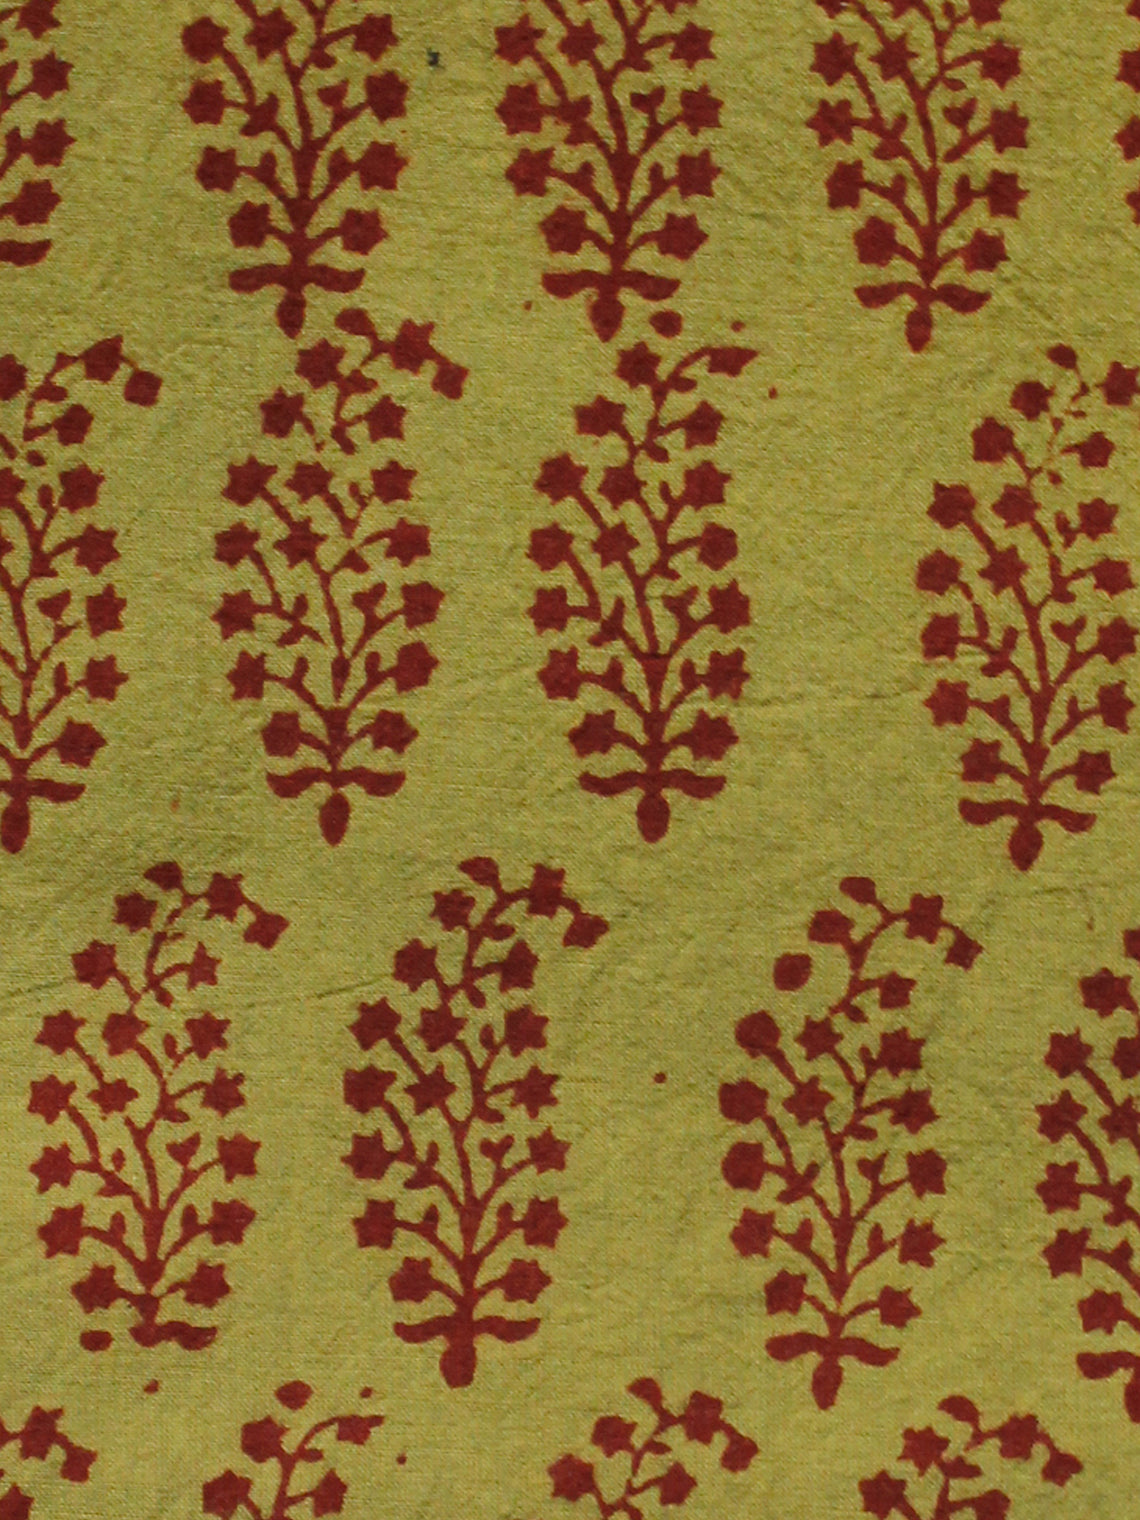 Olive Green Maroon Bagh Printed Cotton Fabric Per Meter - F005F1704